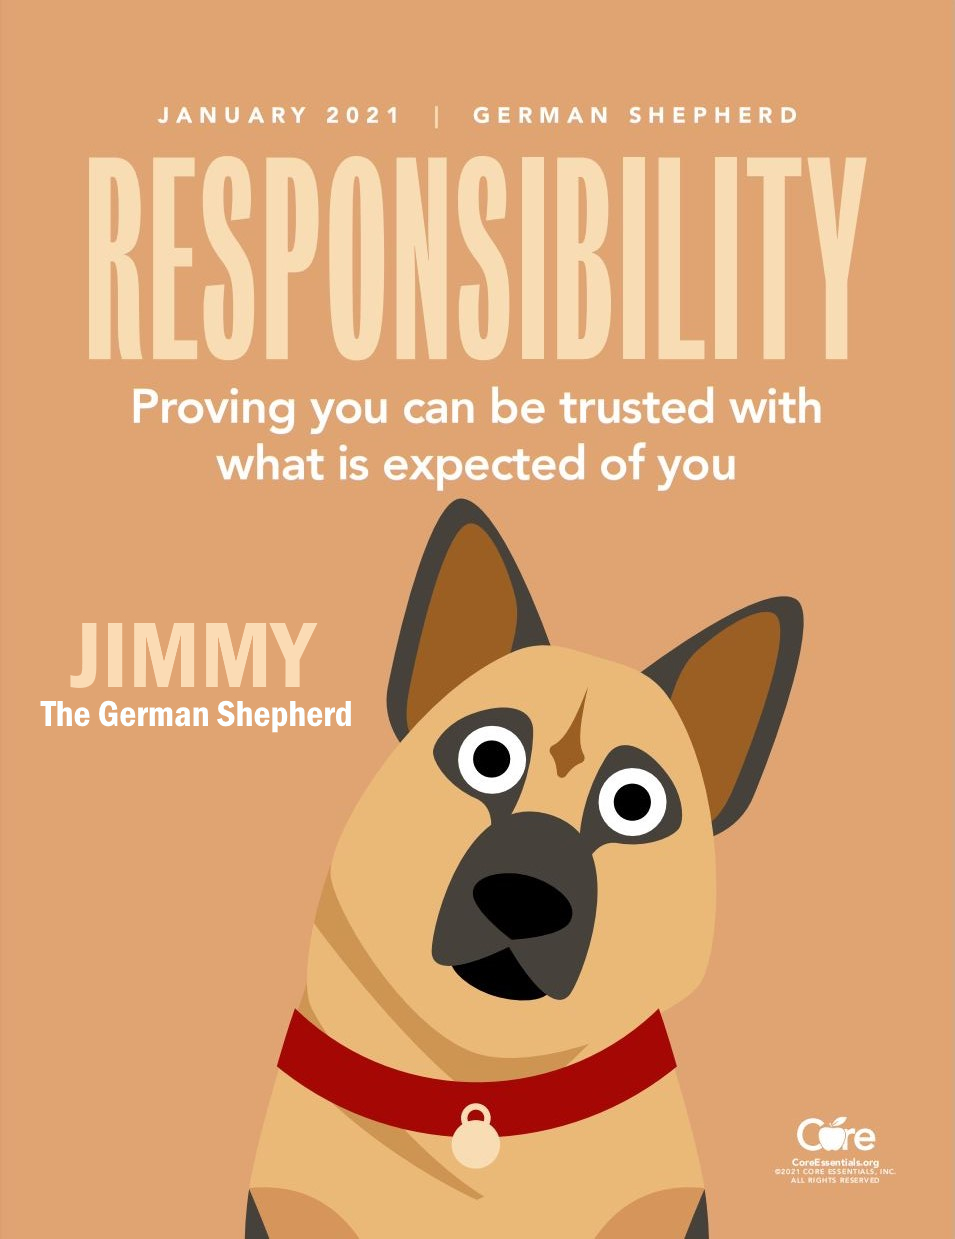 Jimmy The German Shepherd